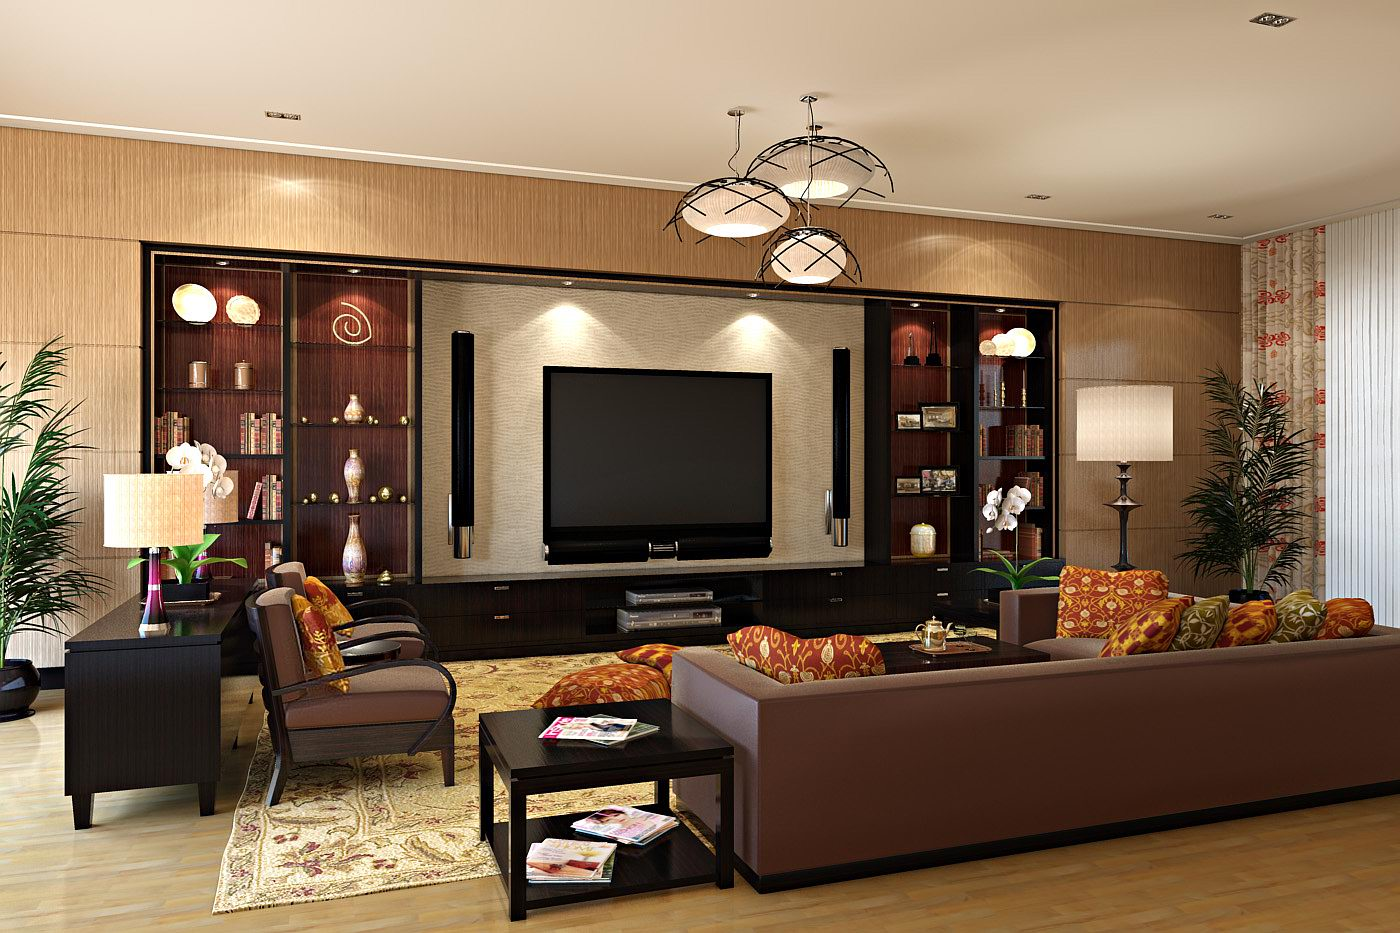 INTERIOR DESIGNS: Home Entertainment Spaces